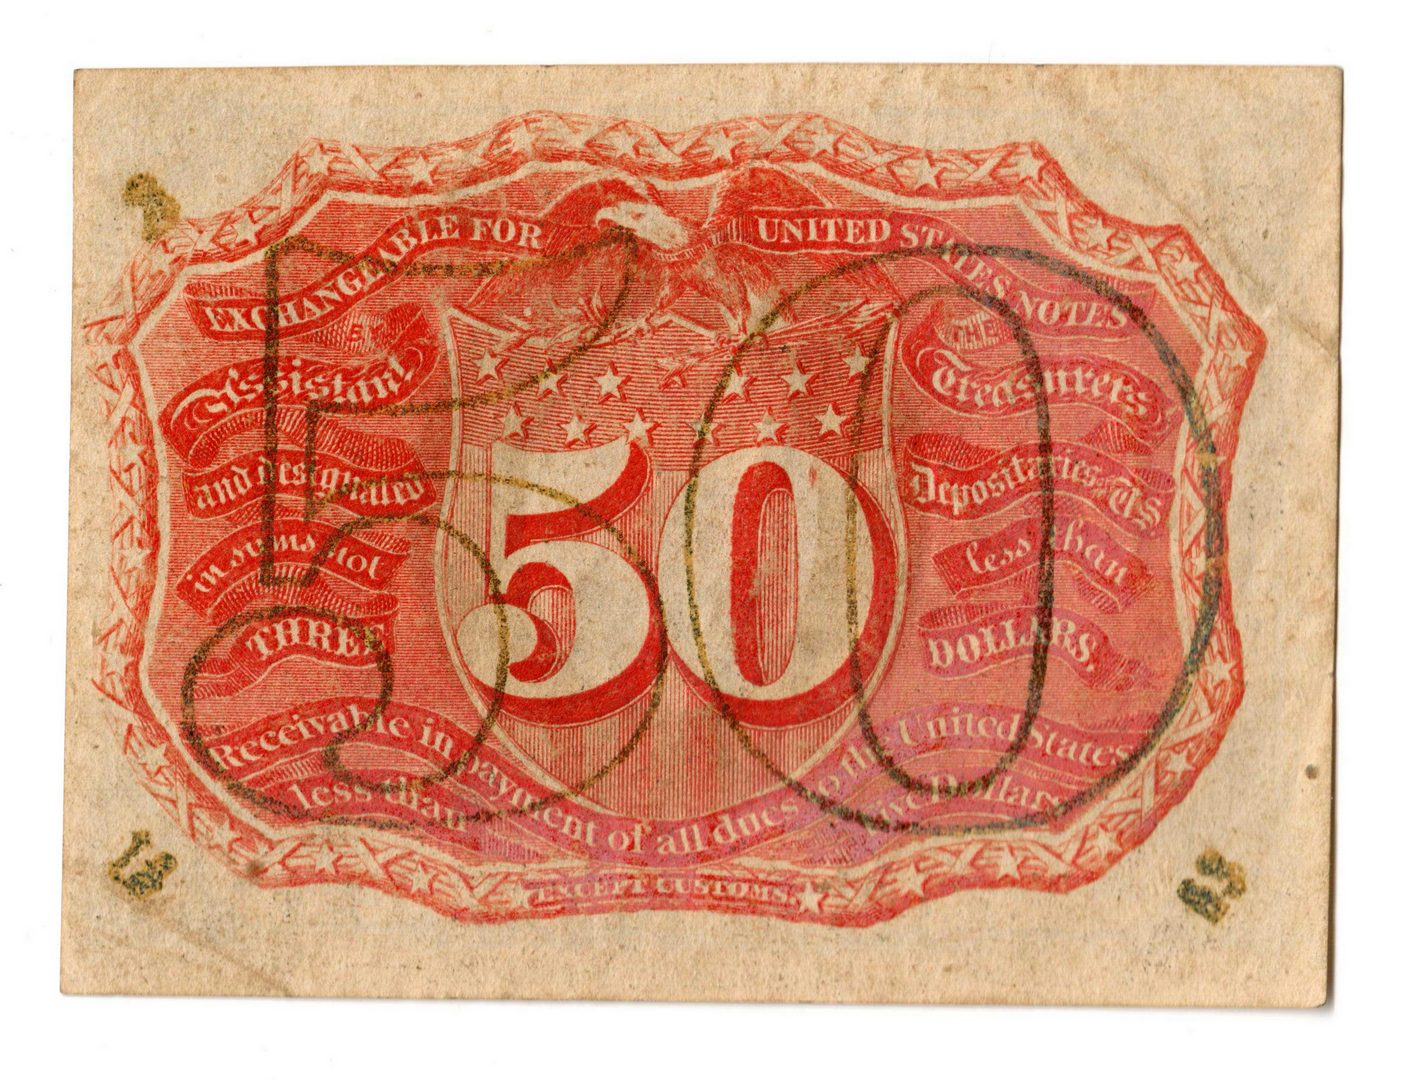 Lot 4: Group Of Seven 50 Cent  U.S. Fractional Banknotes